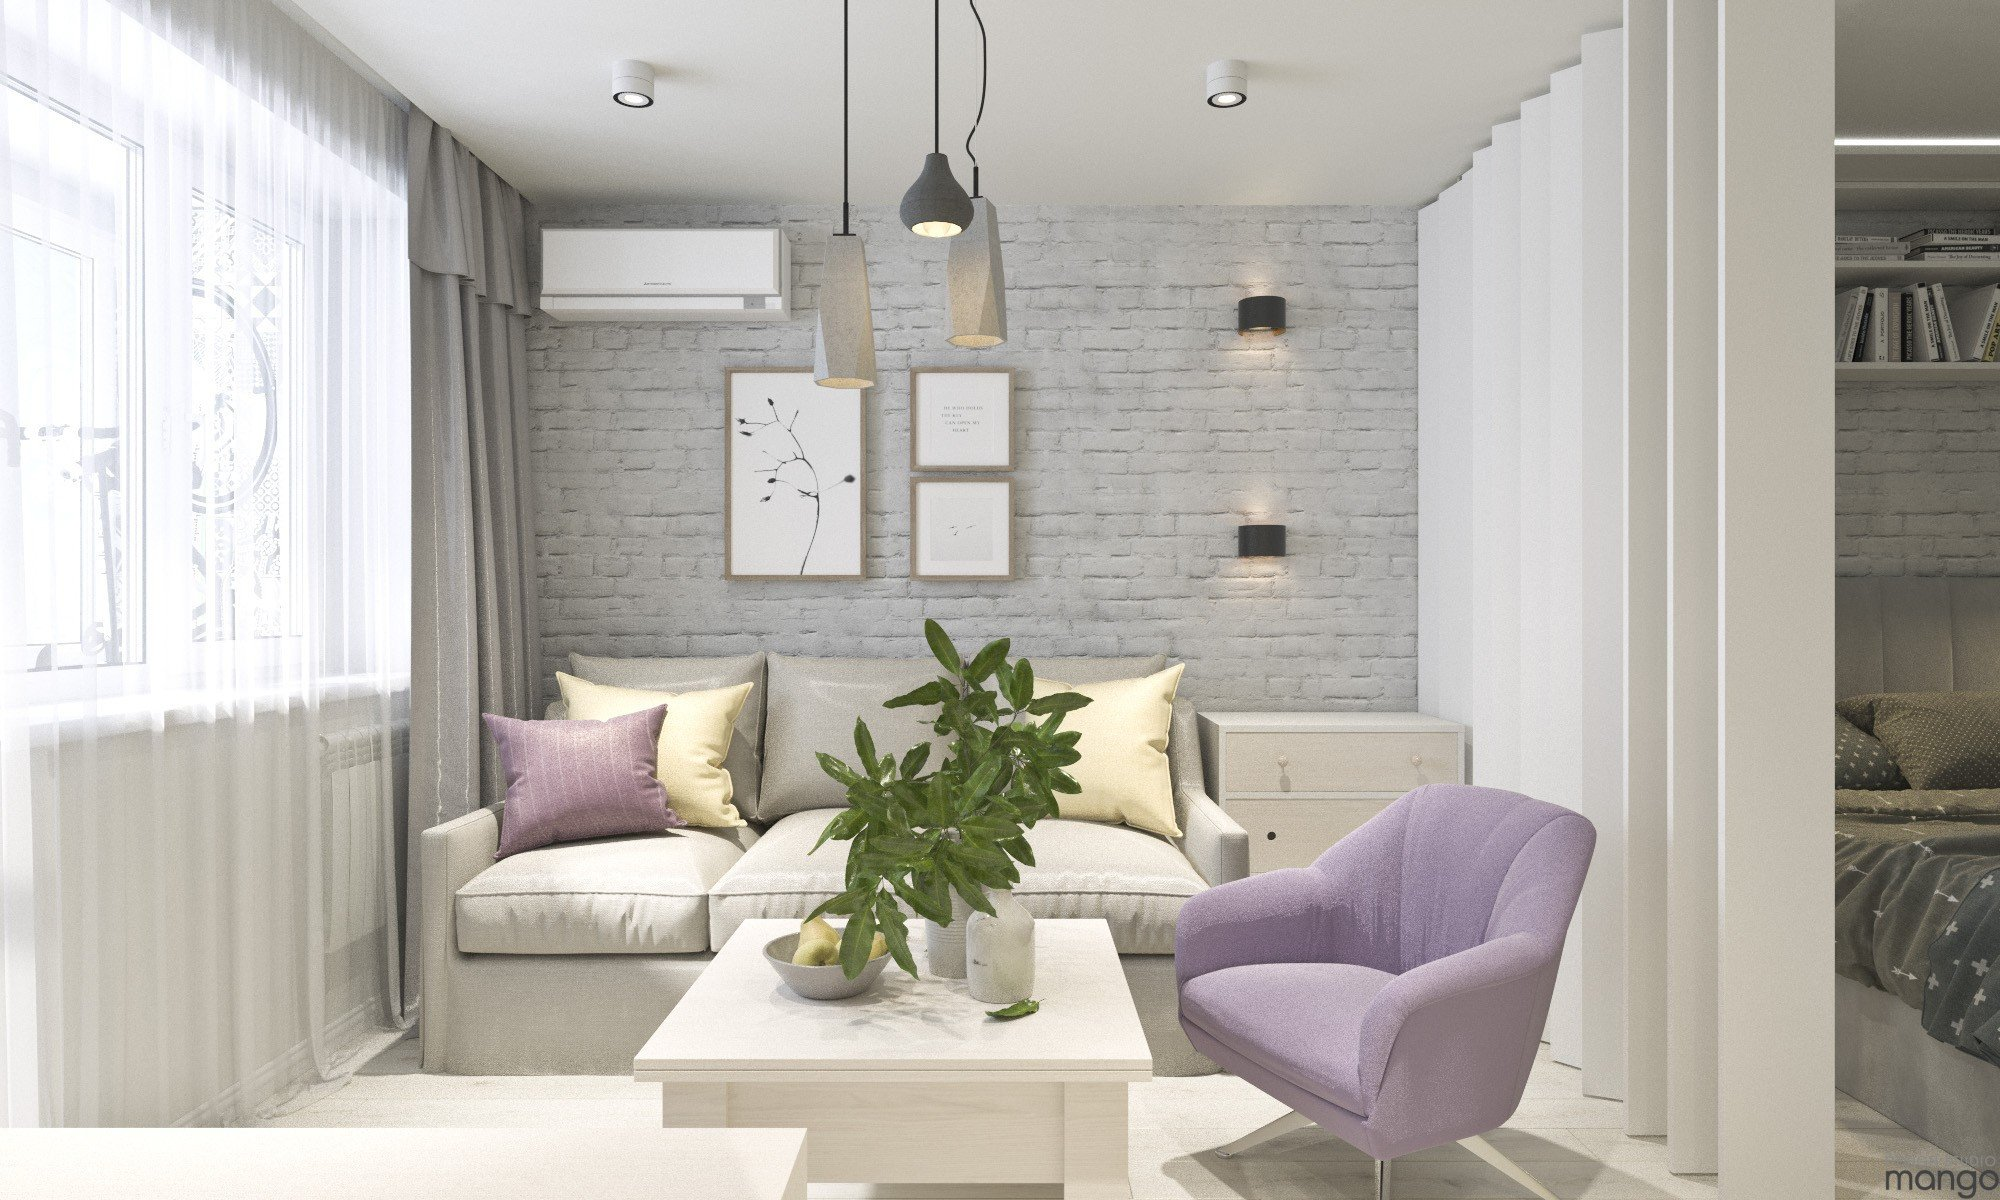 Minimalist Small Living Room Ideas Lovely Types Of 3 Small Living Room Designs Bined Between Modern and Minimalist Interior Decor Ideas